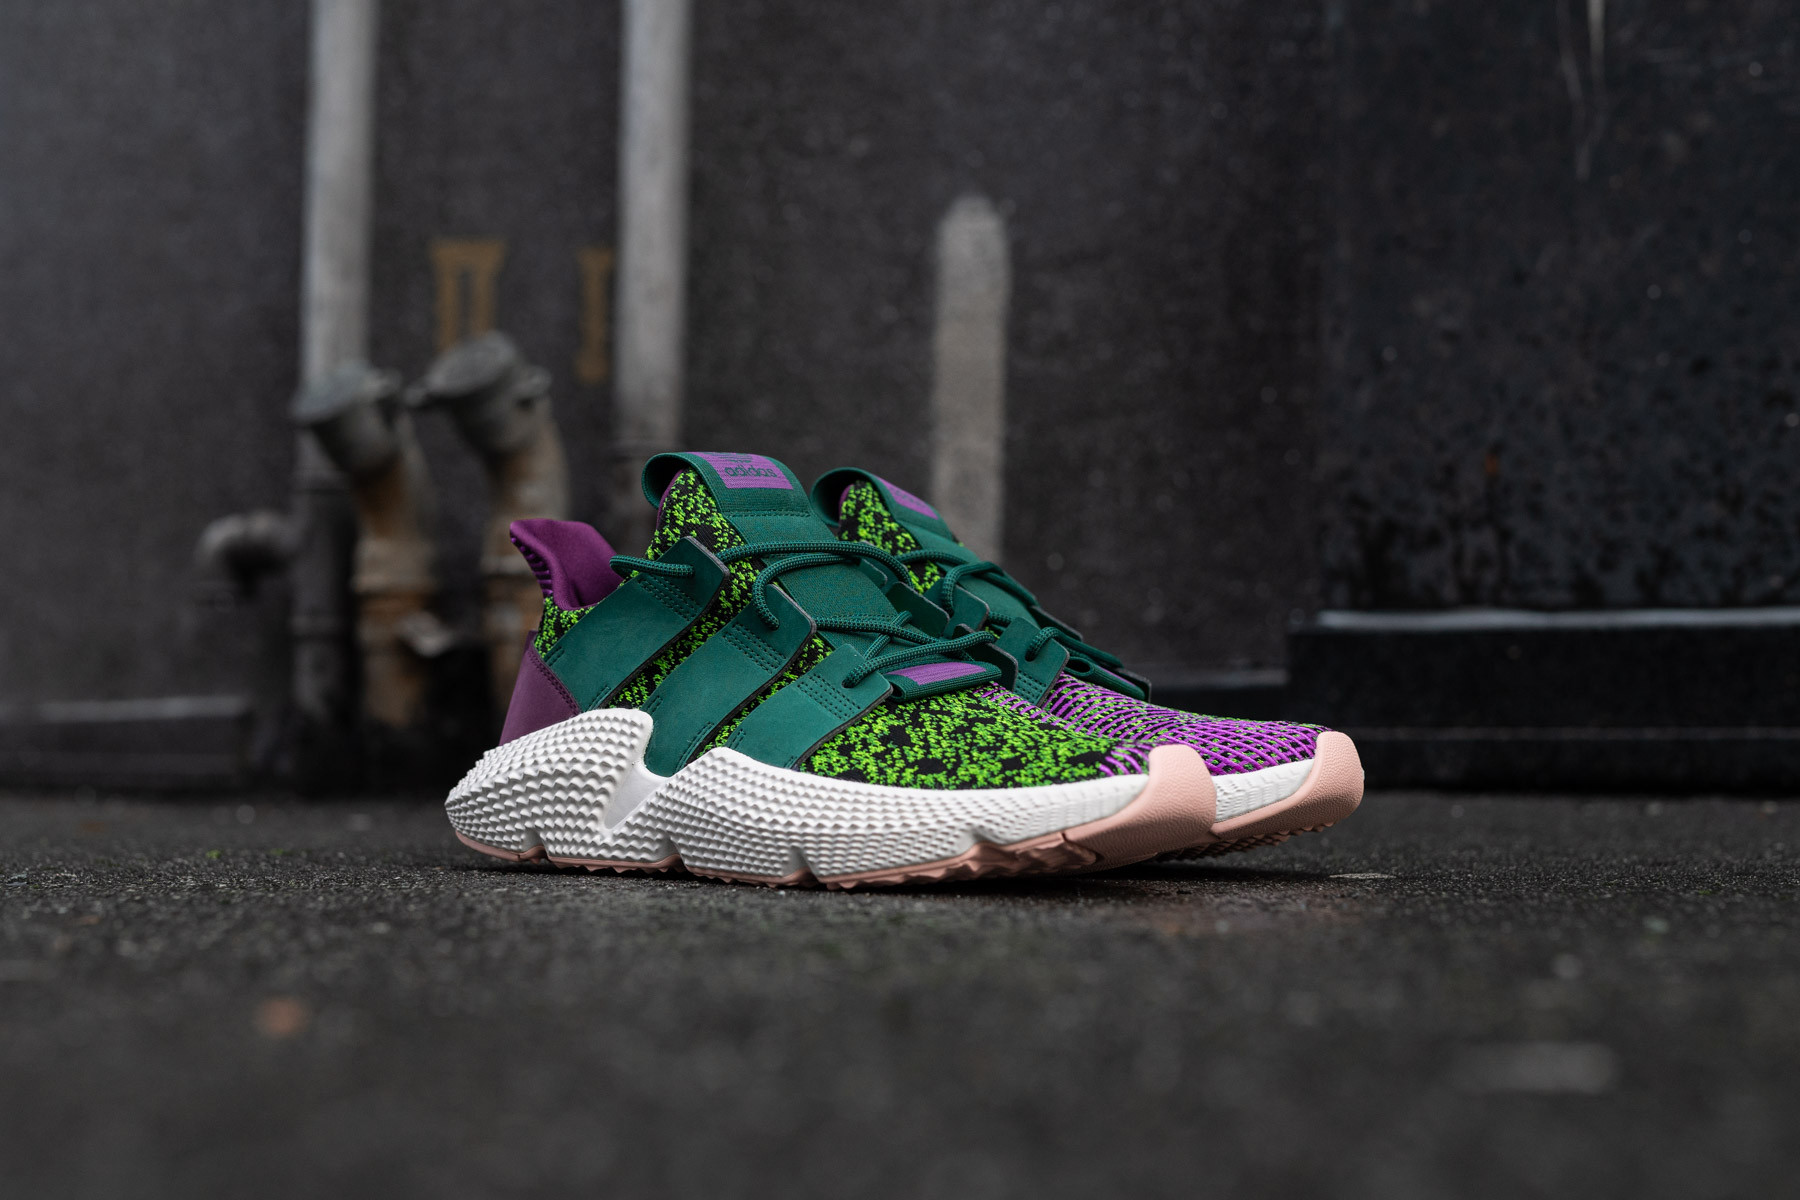 Adidas Prophere Dragonball Z CELL Sneaker.no